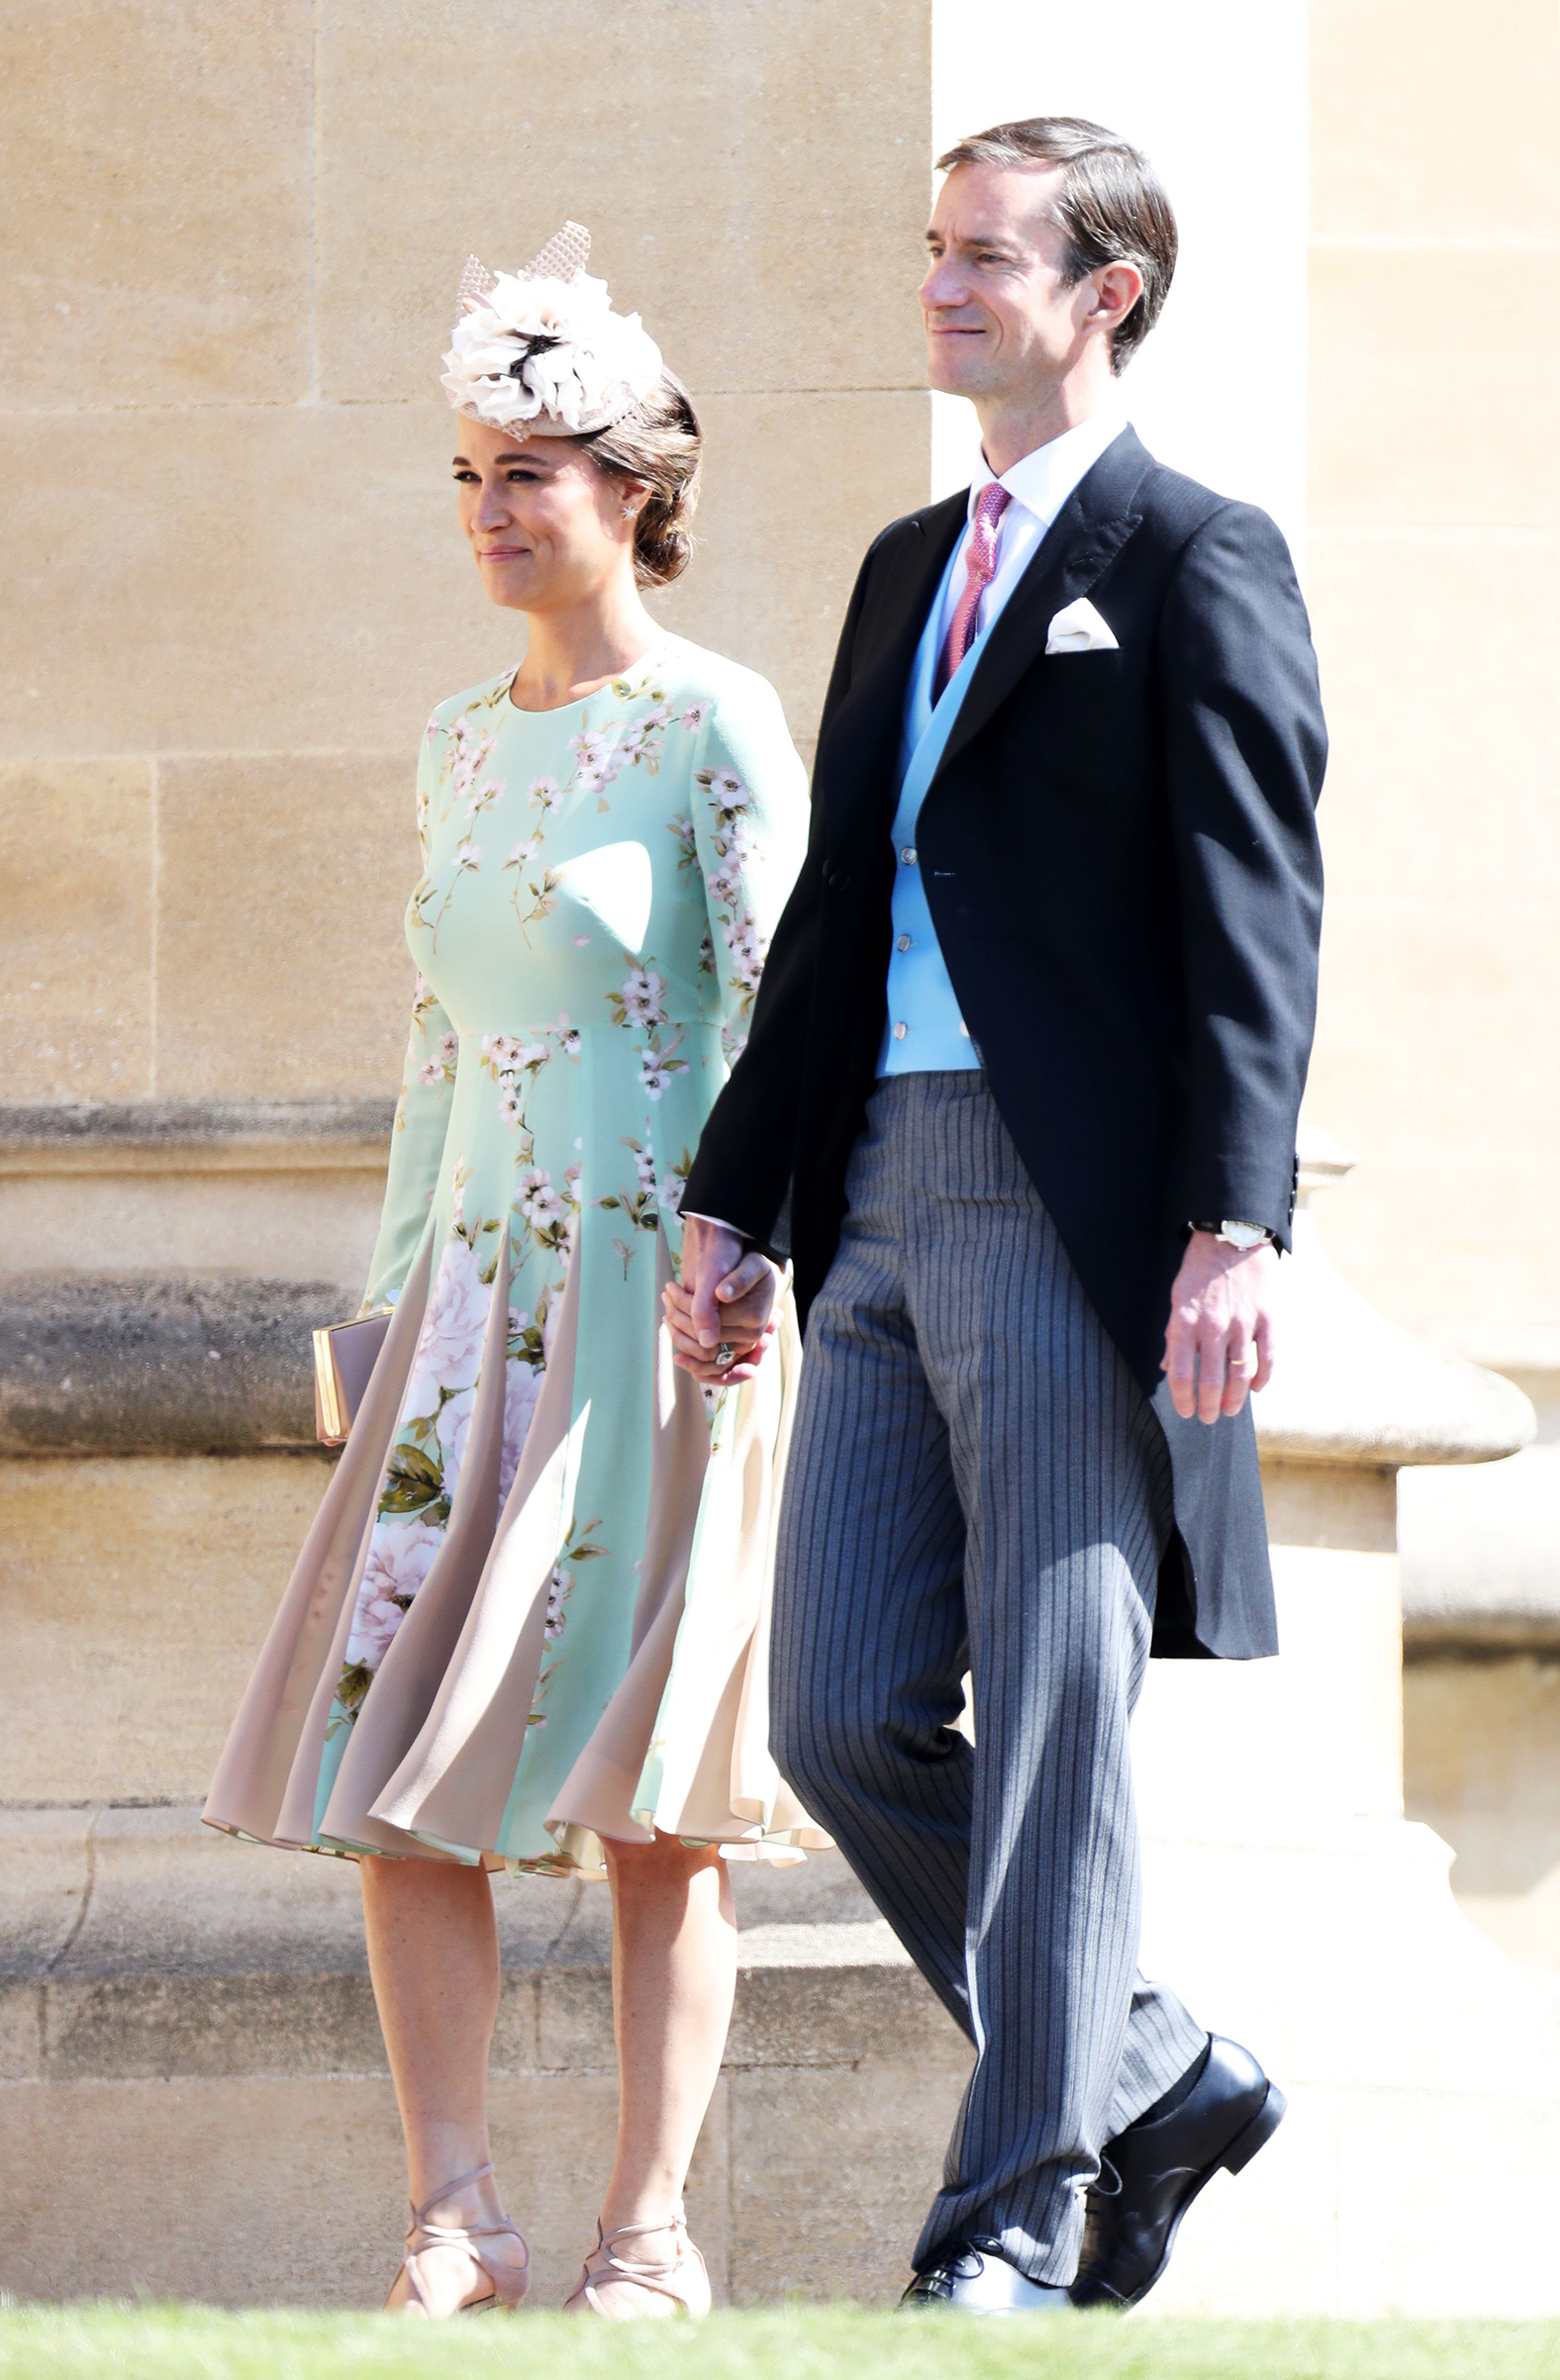 Pippa Middleton and James Matthews arrive at the wedding of Prince Harry and Meghan Markle at St George's Chapel, Windsor Castle on May 19, 2018.